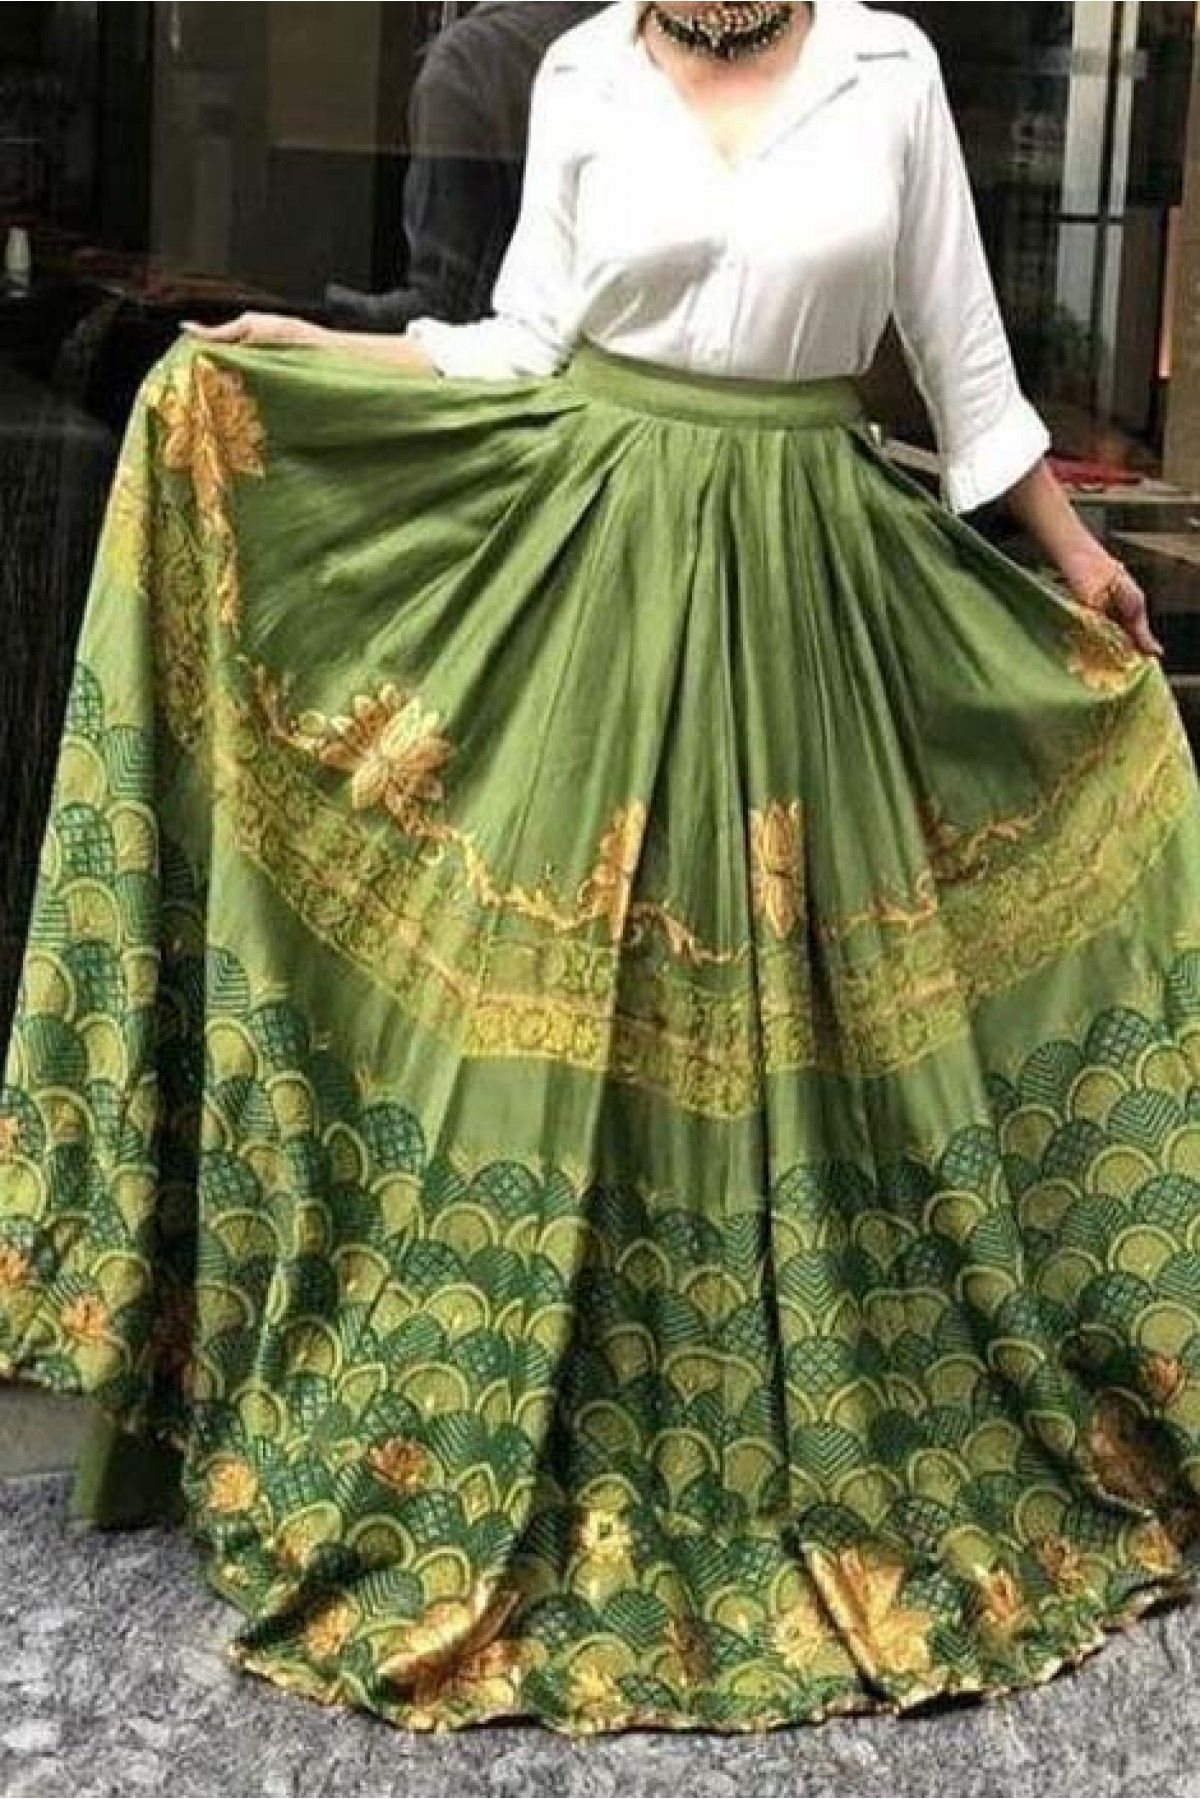 eb88a3ffef Green Colour Banglori Satin Fabric Crop top lehenga Choli Comes With  Matching Blouse. This Lehenga Choli Is Crafted With Printed.